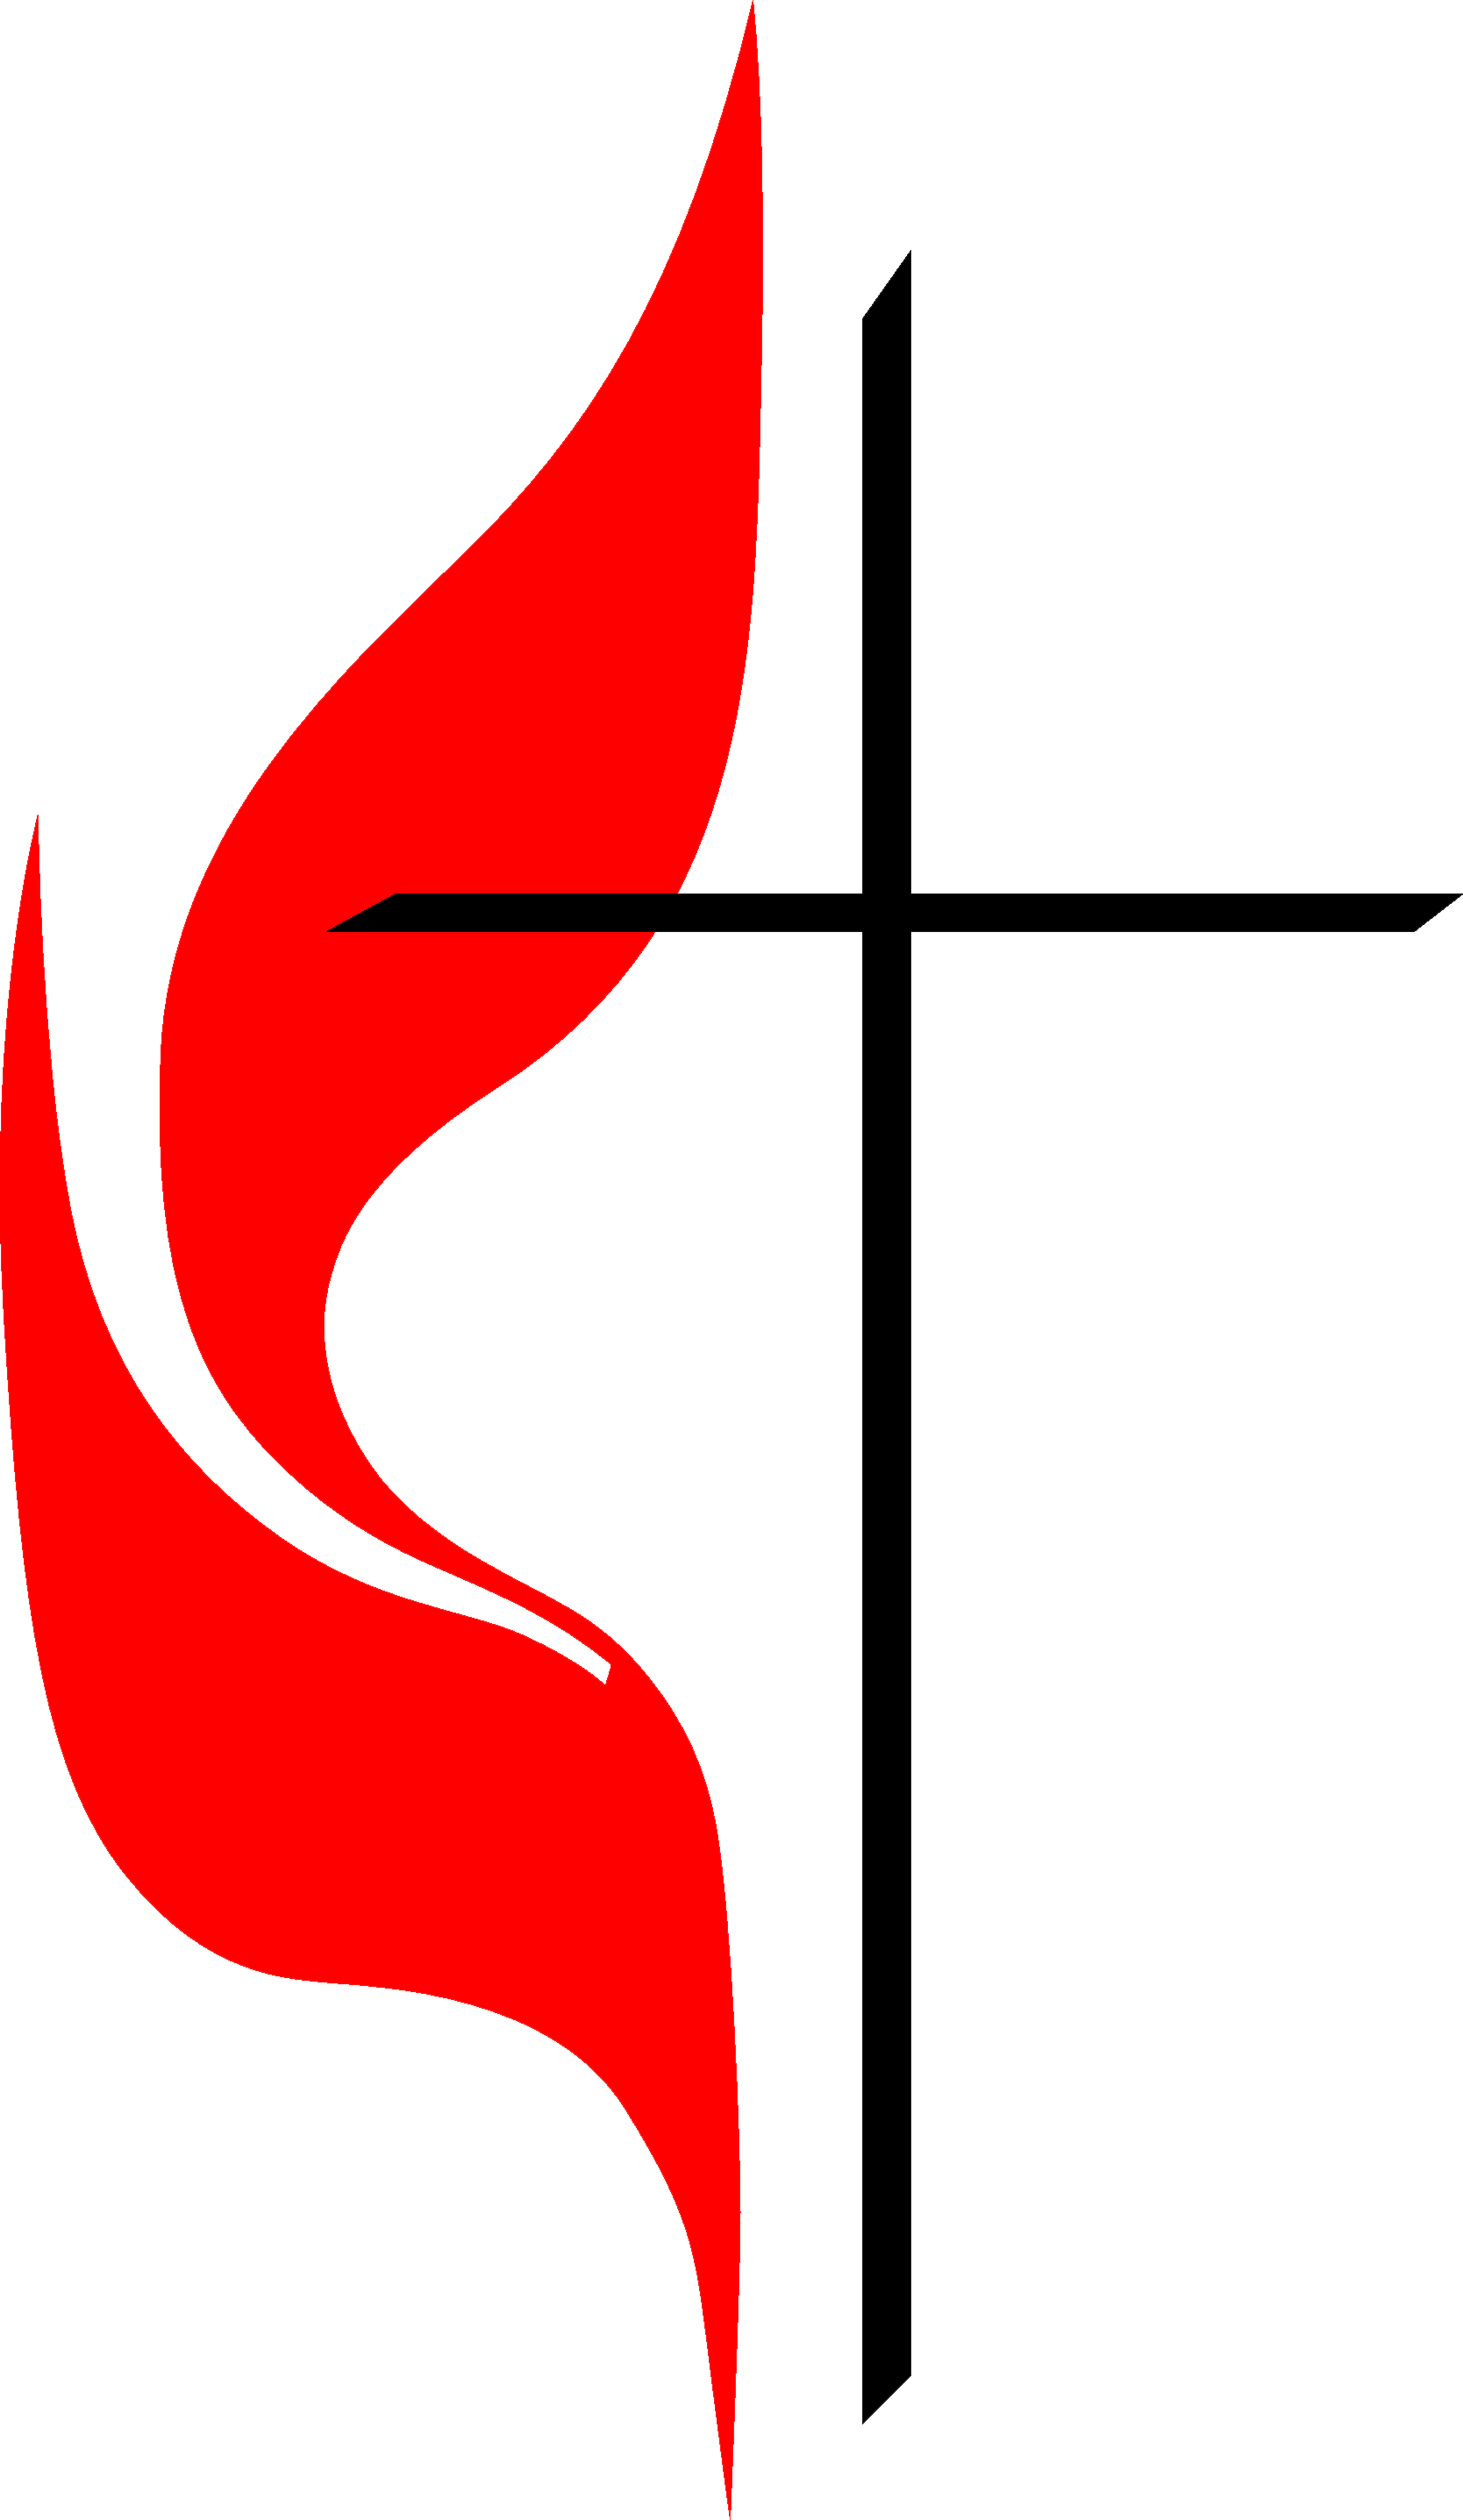 St john united methodist. Curriculum clipart church